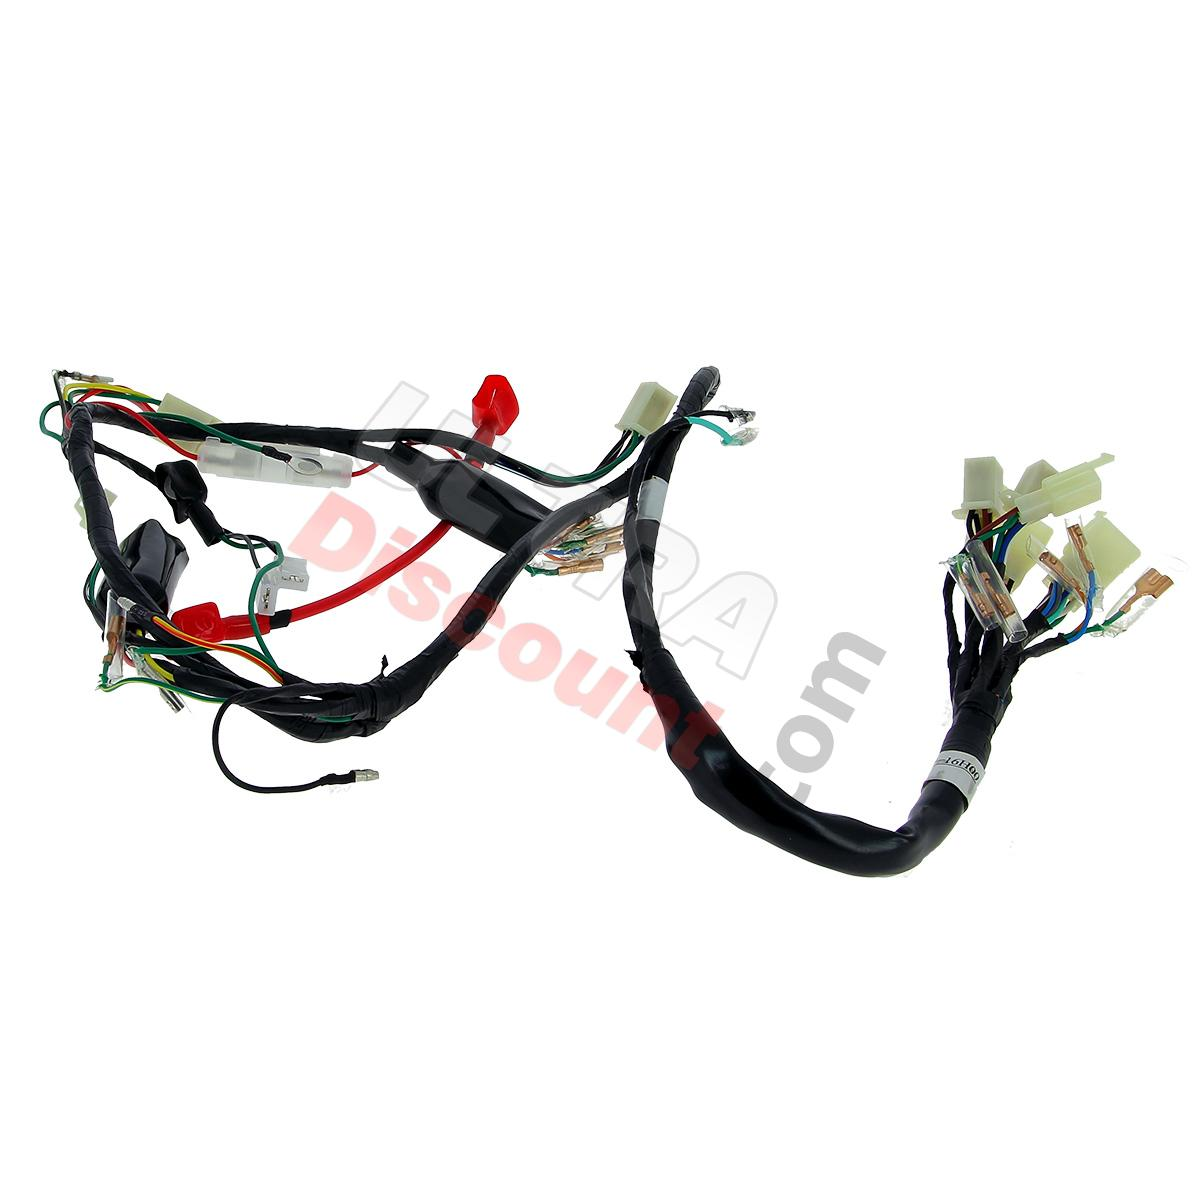 wire harness 36610 16h00 for monkey 50cc 125cc 10 2015 ignition mokey gorilla spare